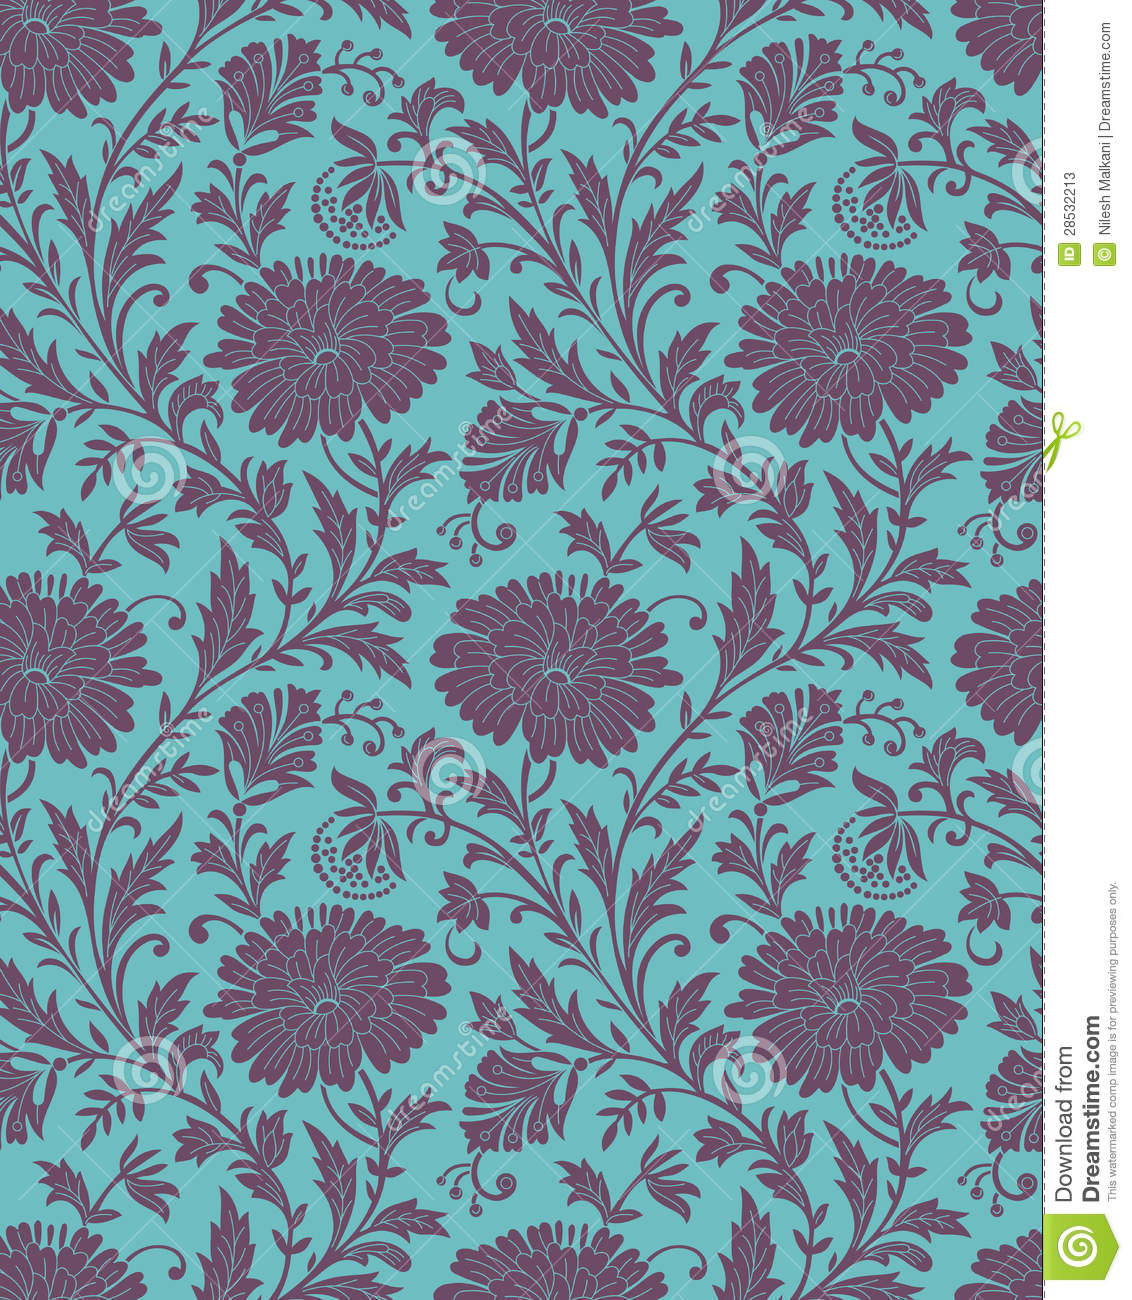 Seamless-Floral background for fabric